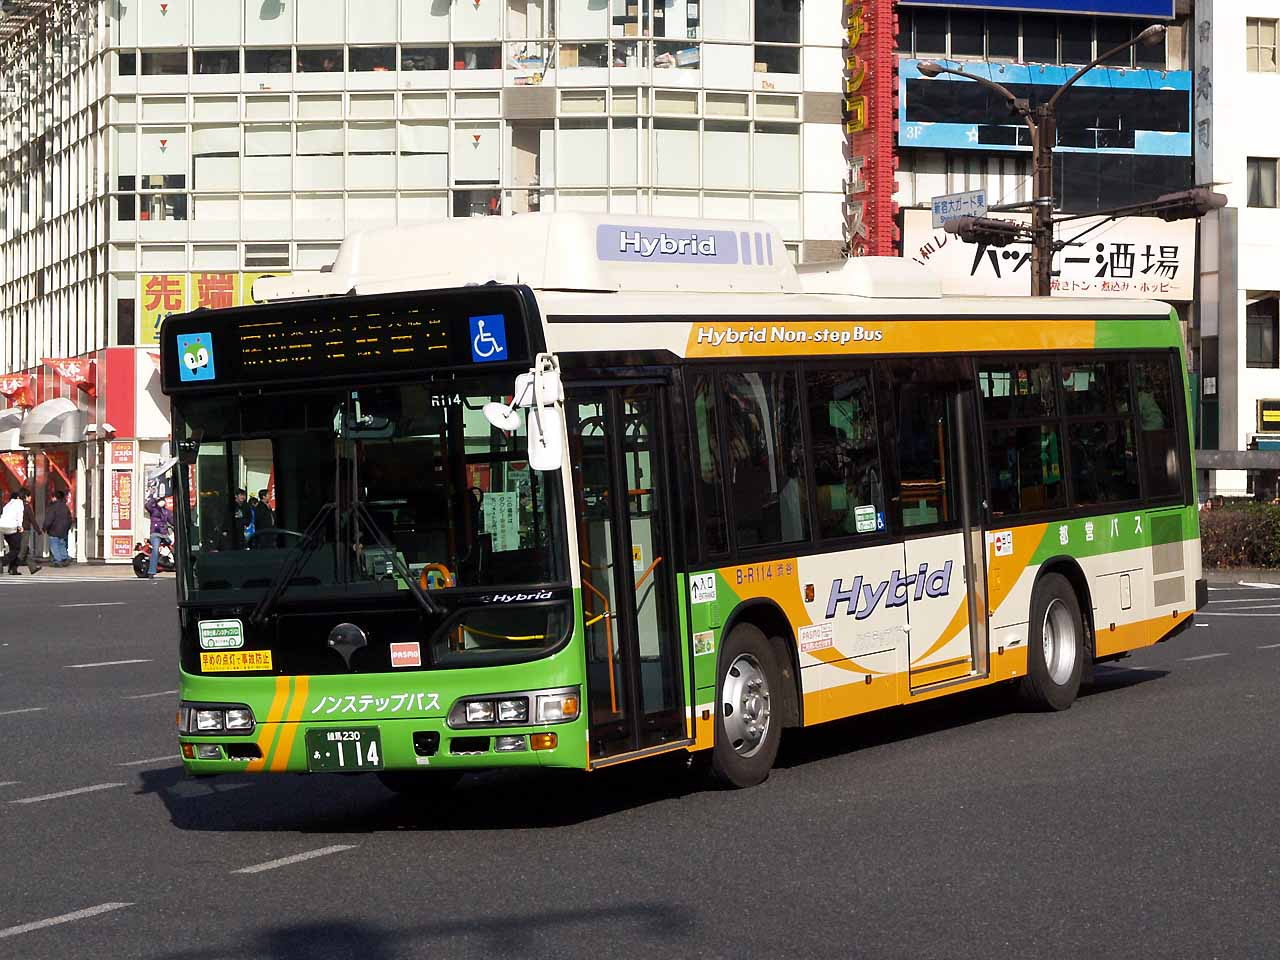 5 Things You Didn't Know About Buses